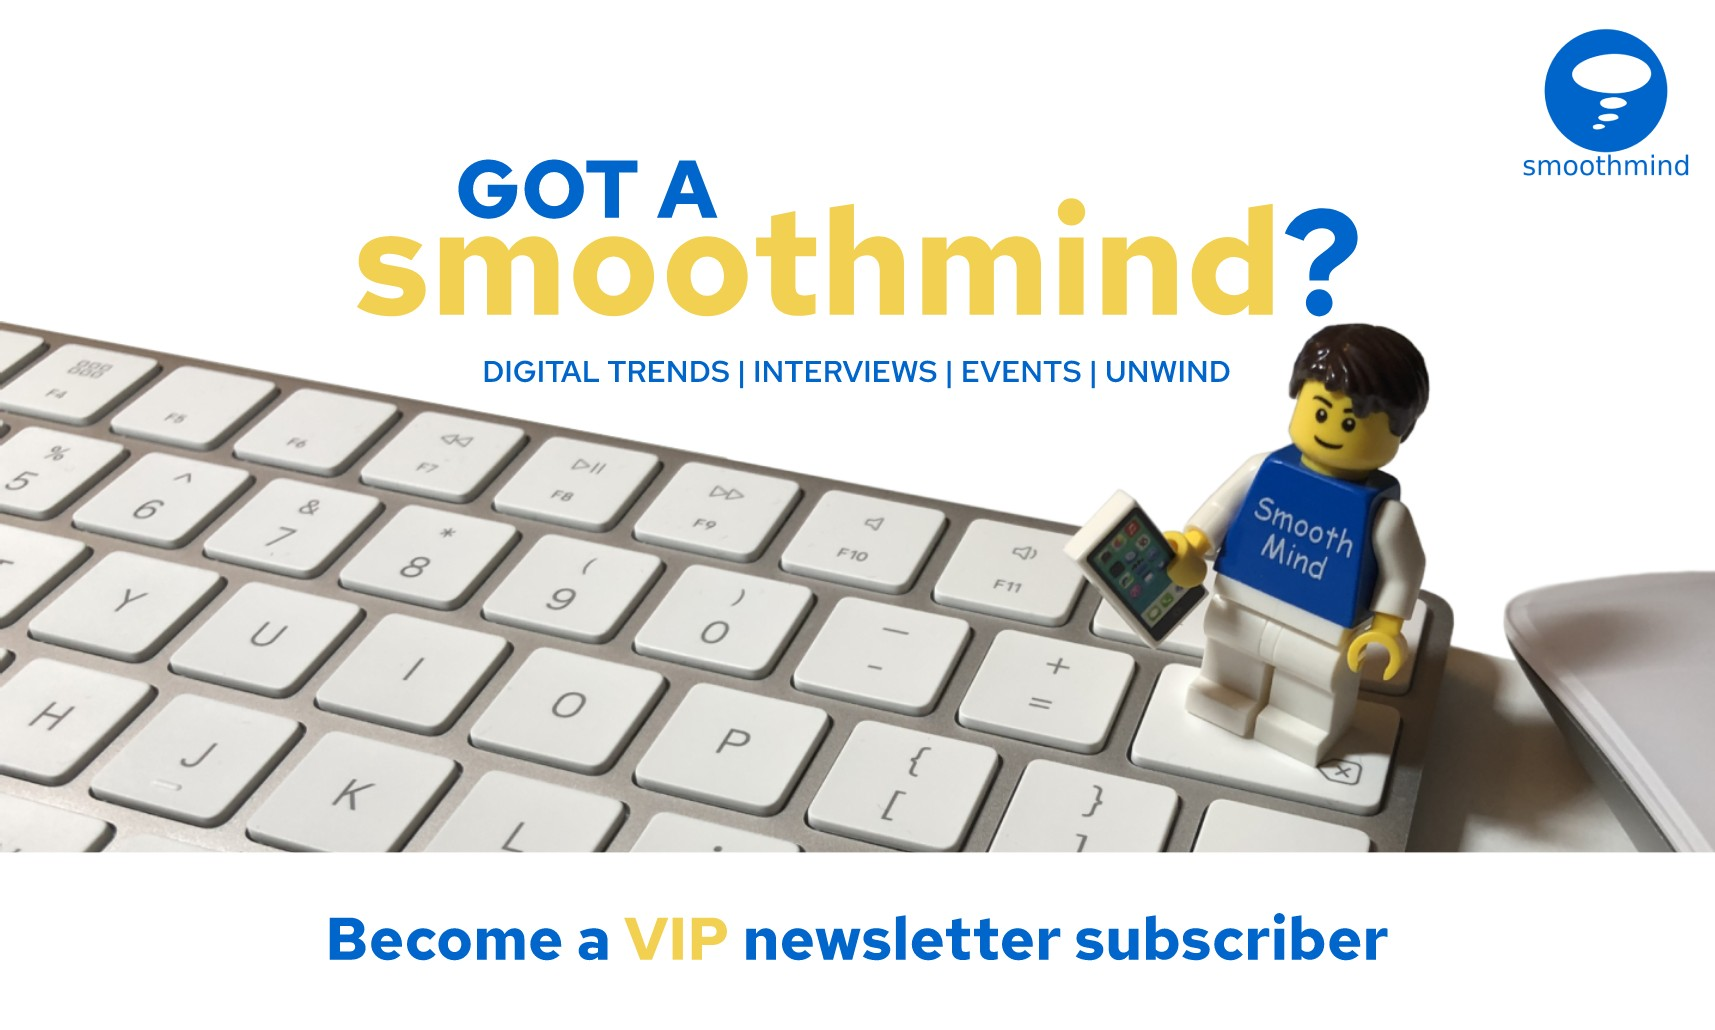 Subscribe to the smoothmind VIP newsletter